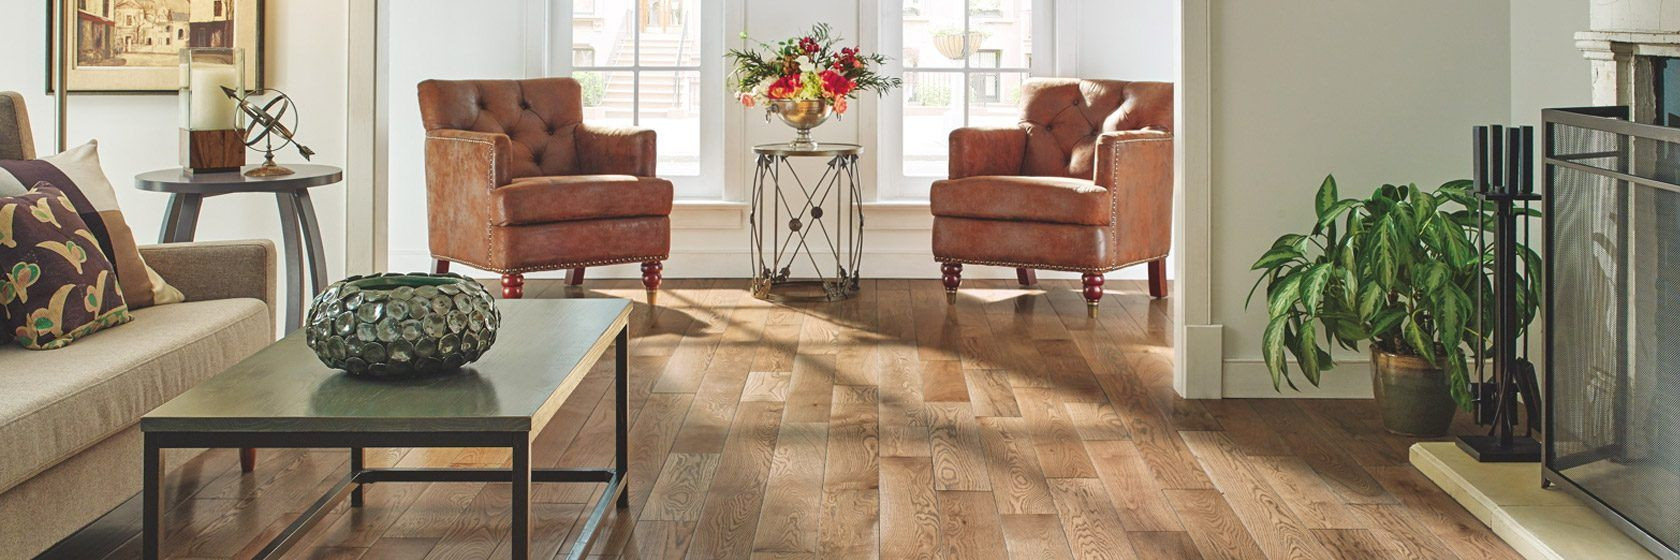 2 1 4 maple hardwood flooring of oak solid hardwood hay ground saktb39l4hgw is part of the with regard to oak solid hardwood hay ground saktb39l4hgw is part of the timberbrushed collection from hardwood view specs order a sample